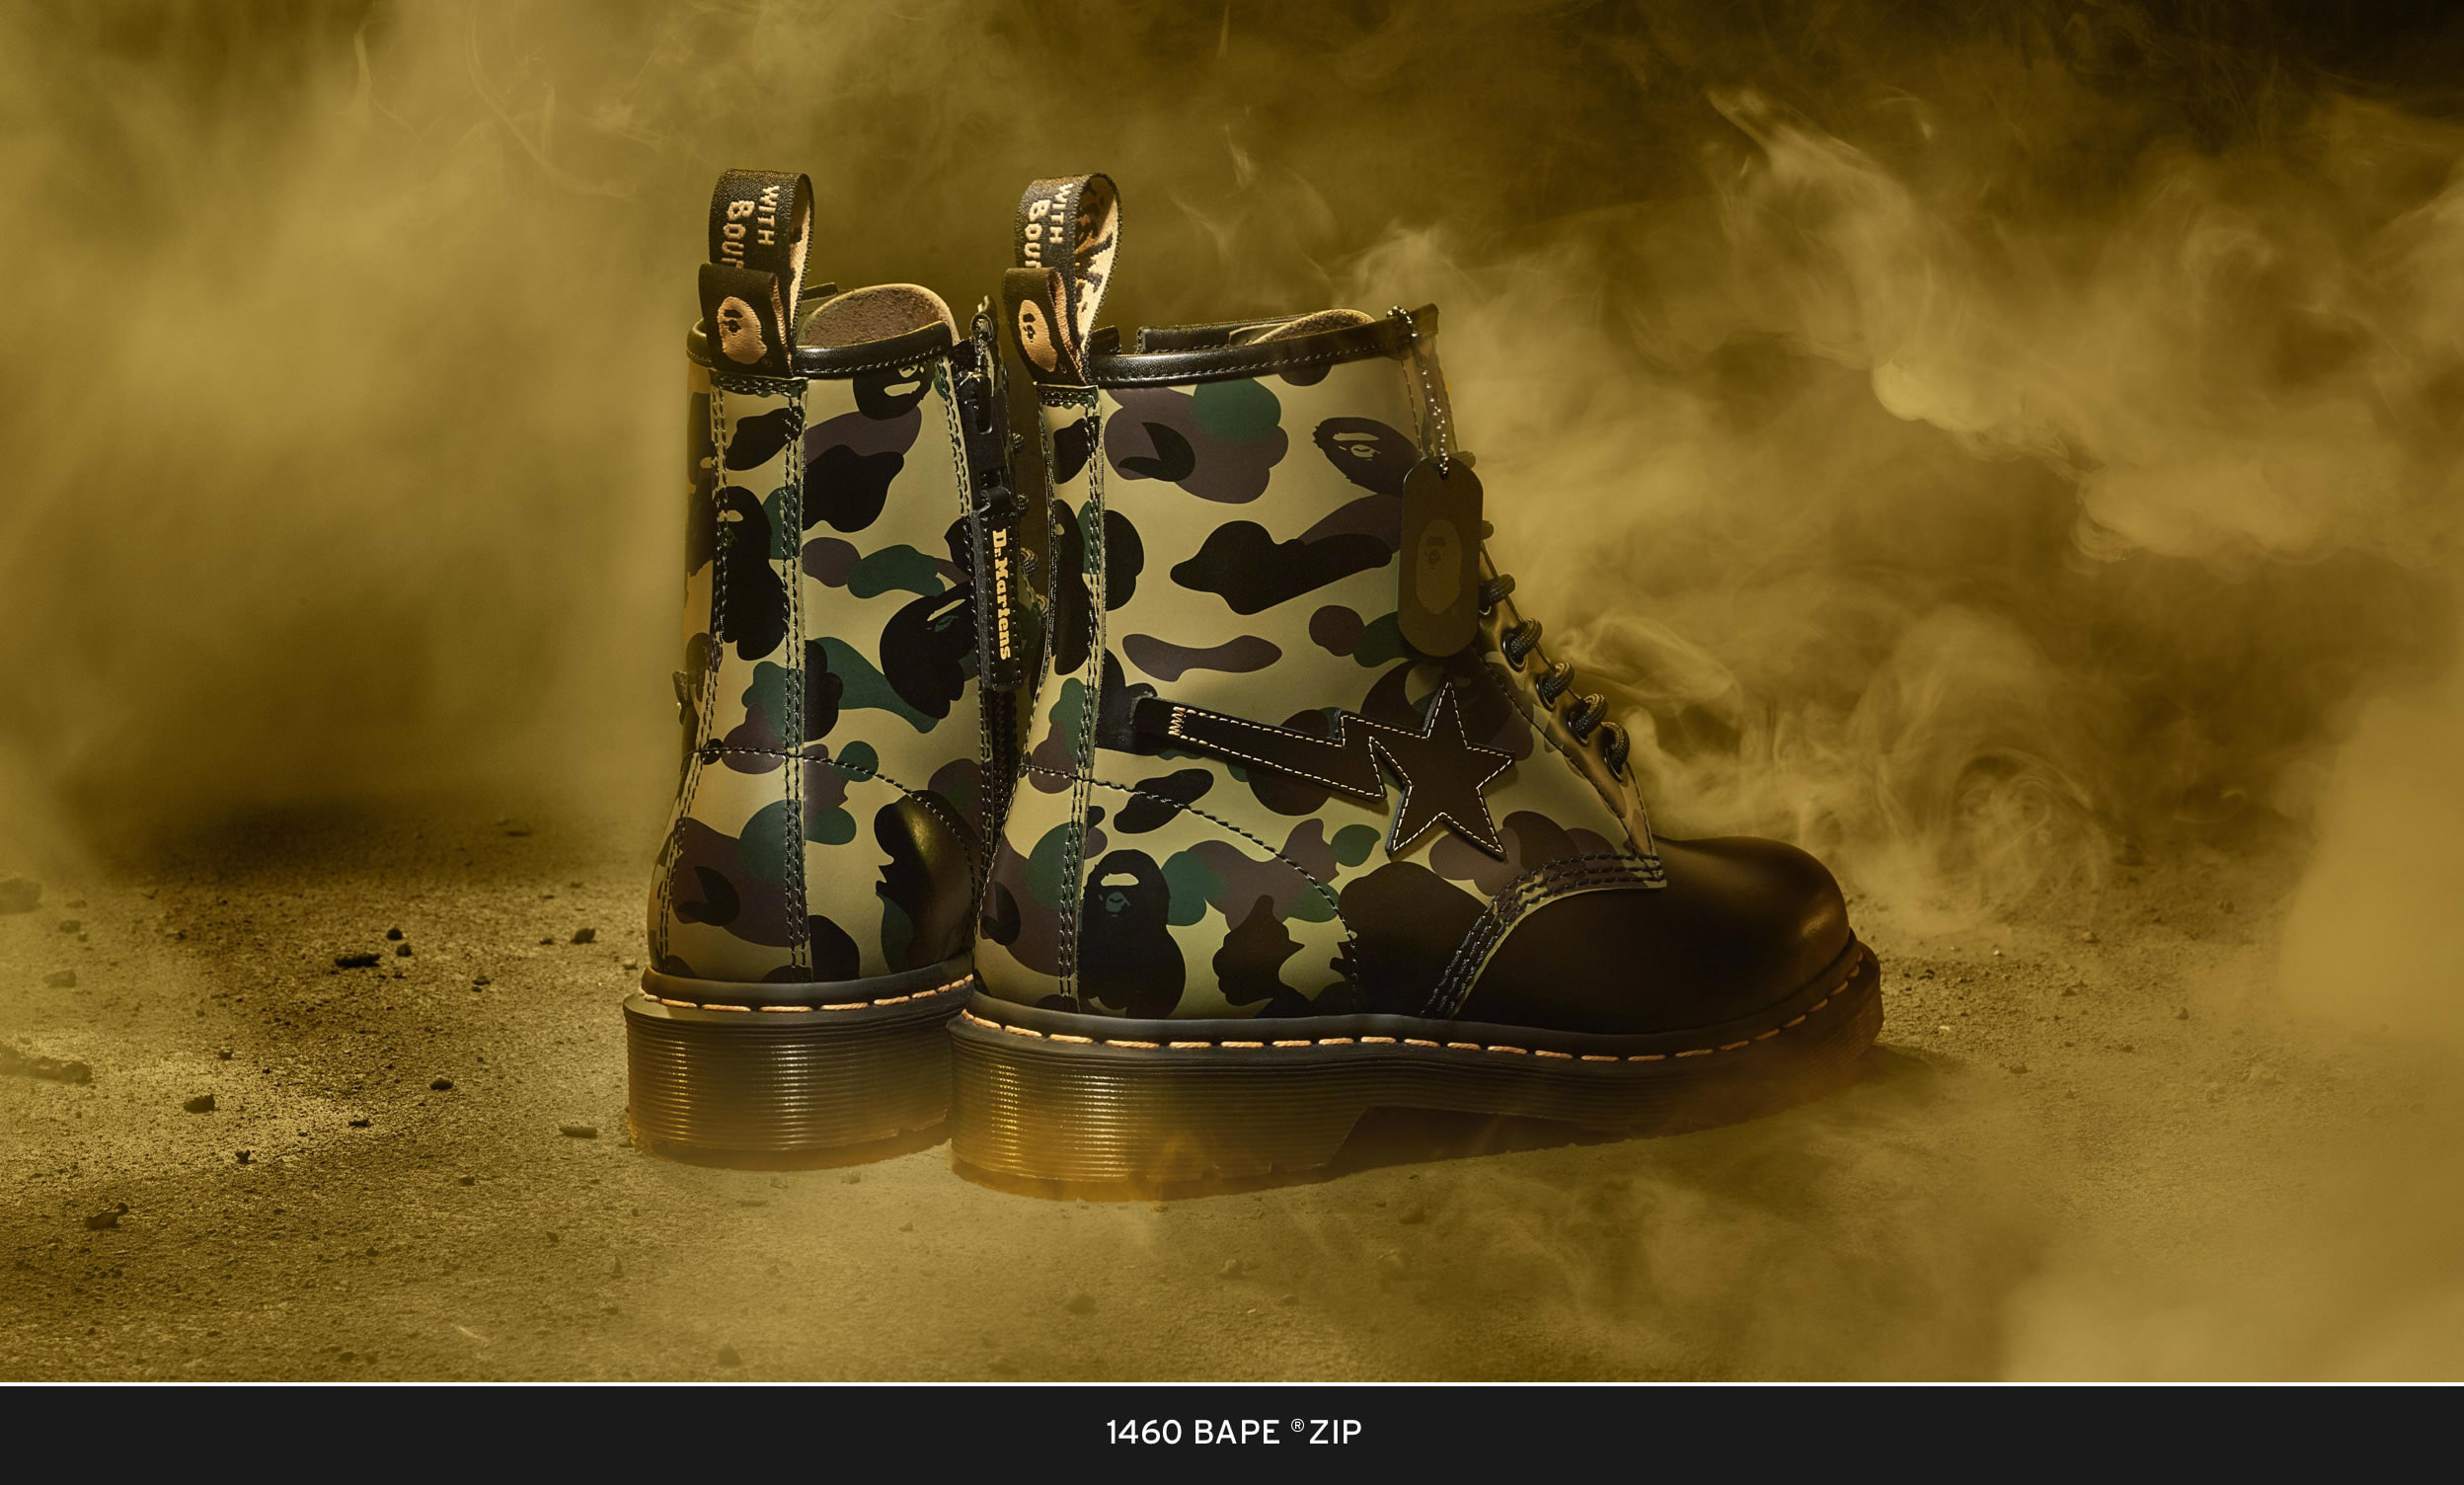 Bape x Dr Martens 1460: Collaboration Boot Officially Drops